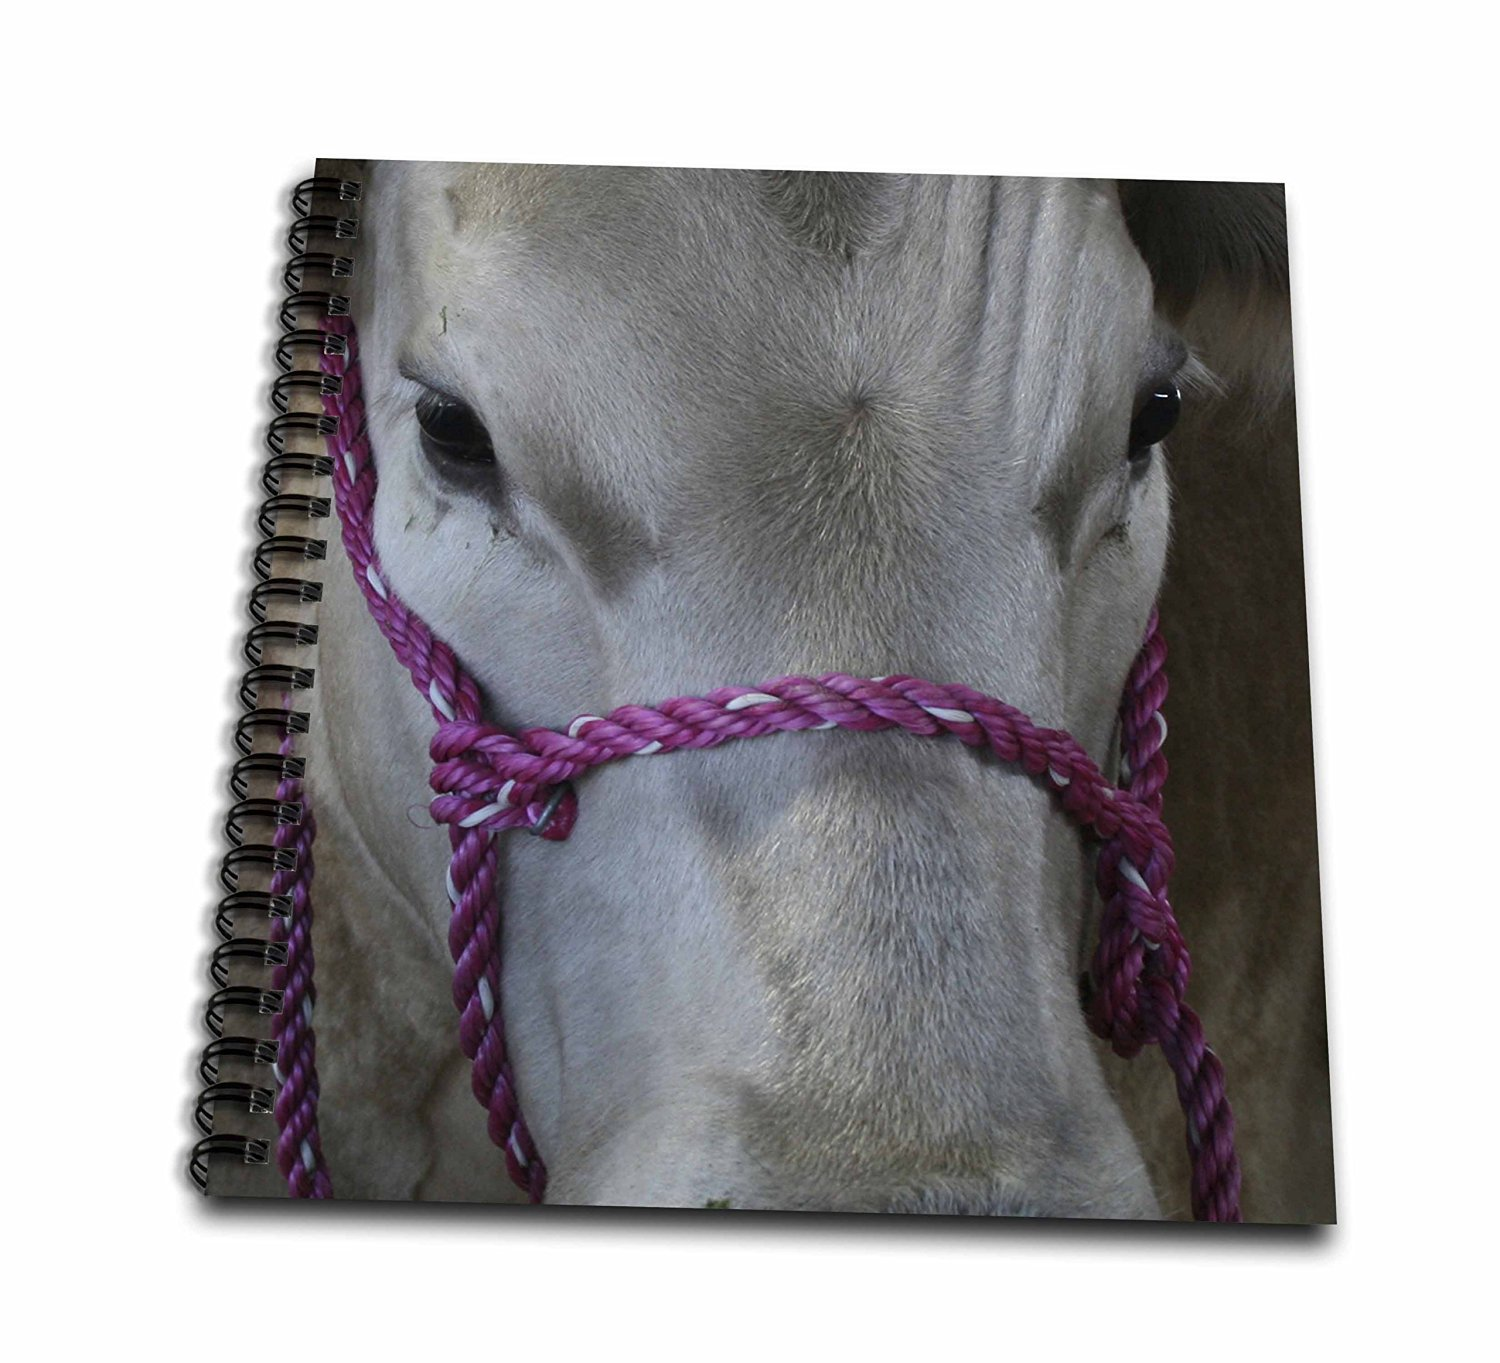 Susans Zoo Crew Animals - white cow pink halter - Memory Book 12 x 12 inch (db_184823_2)